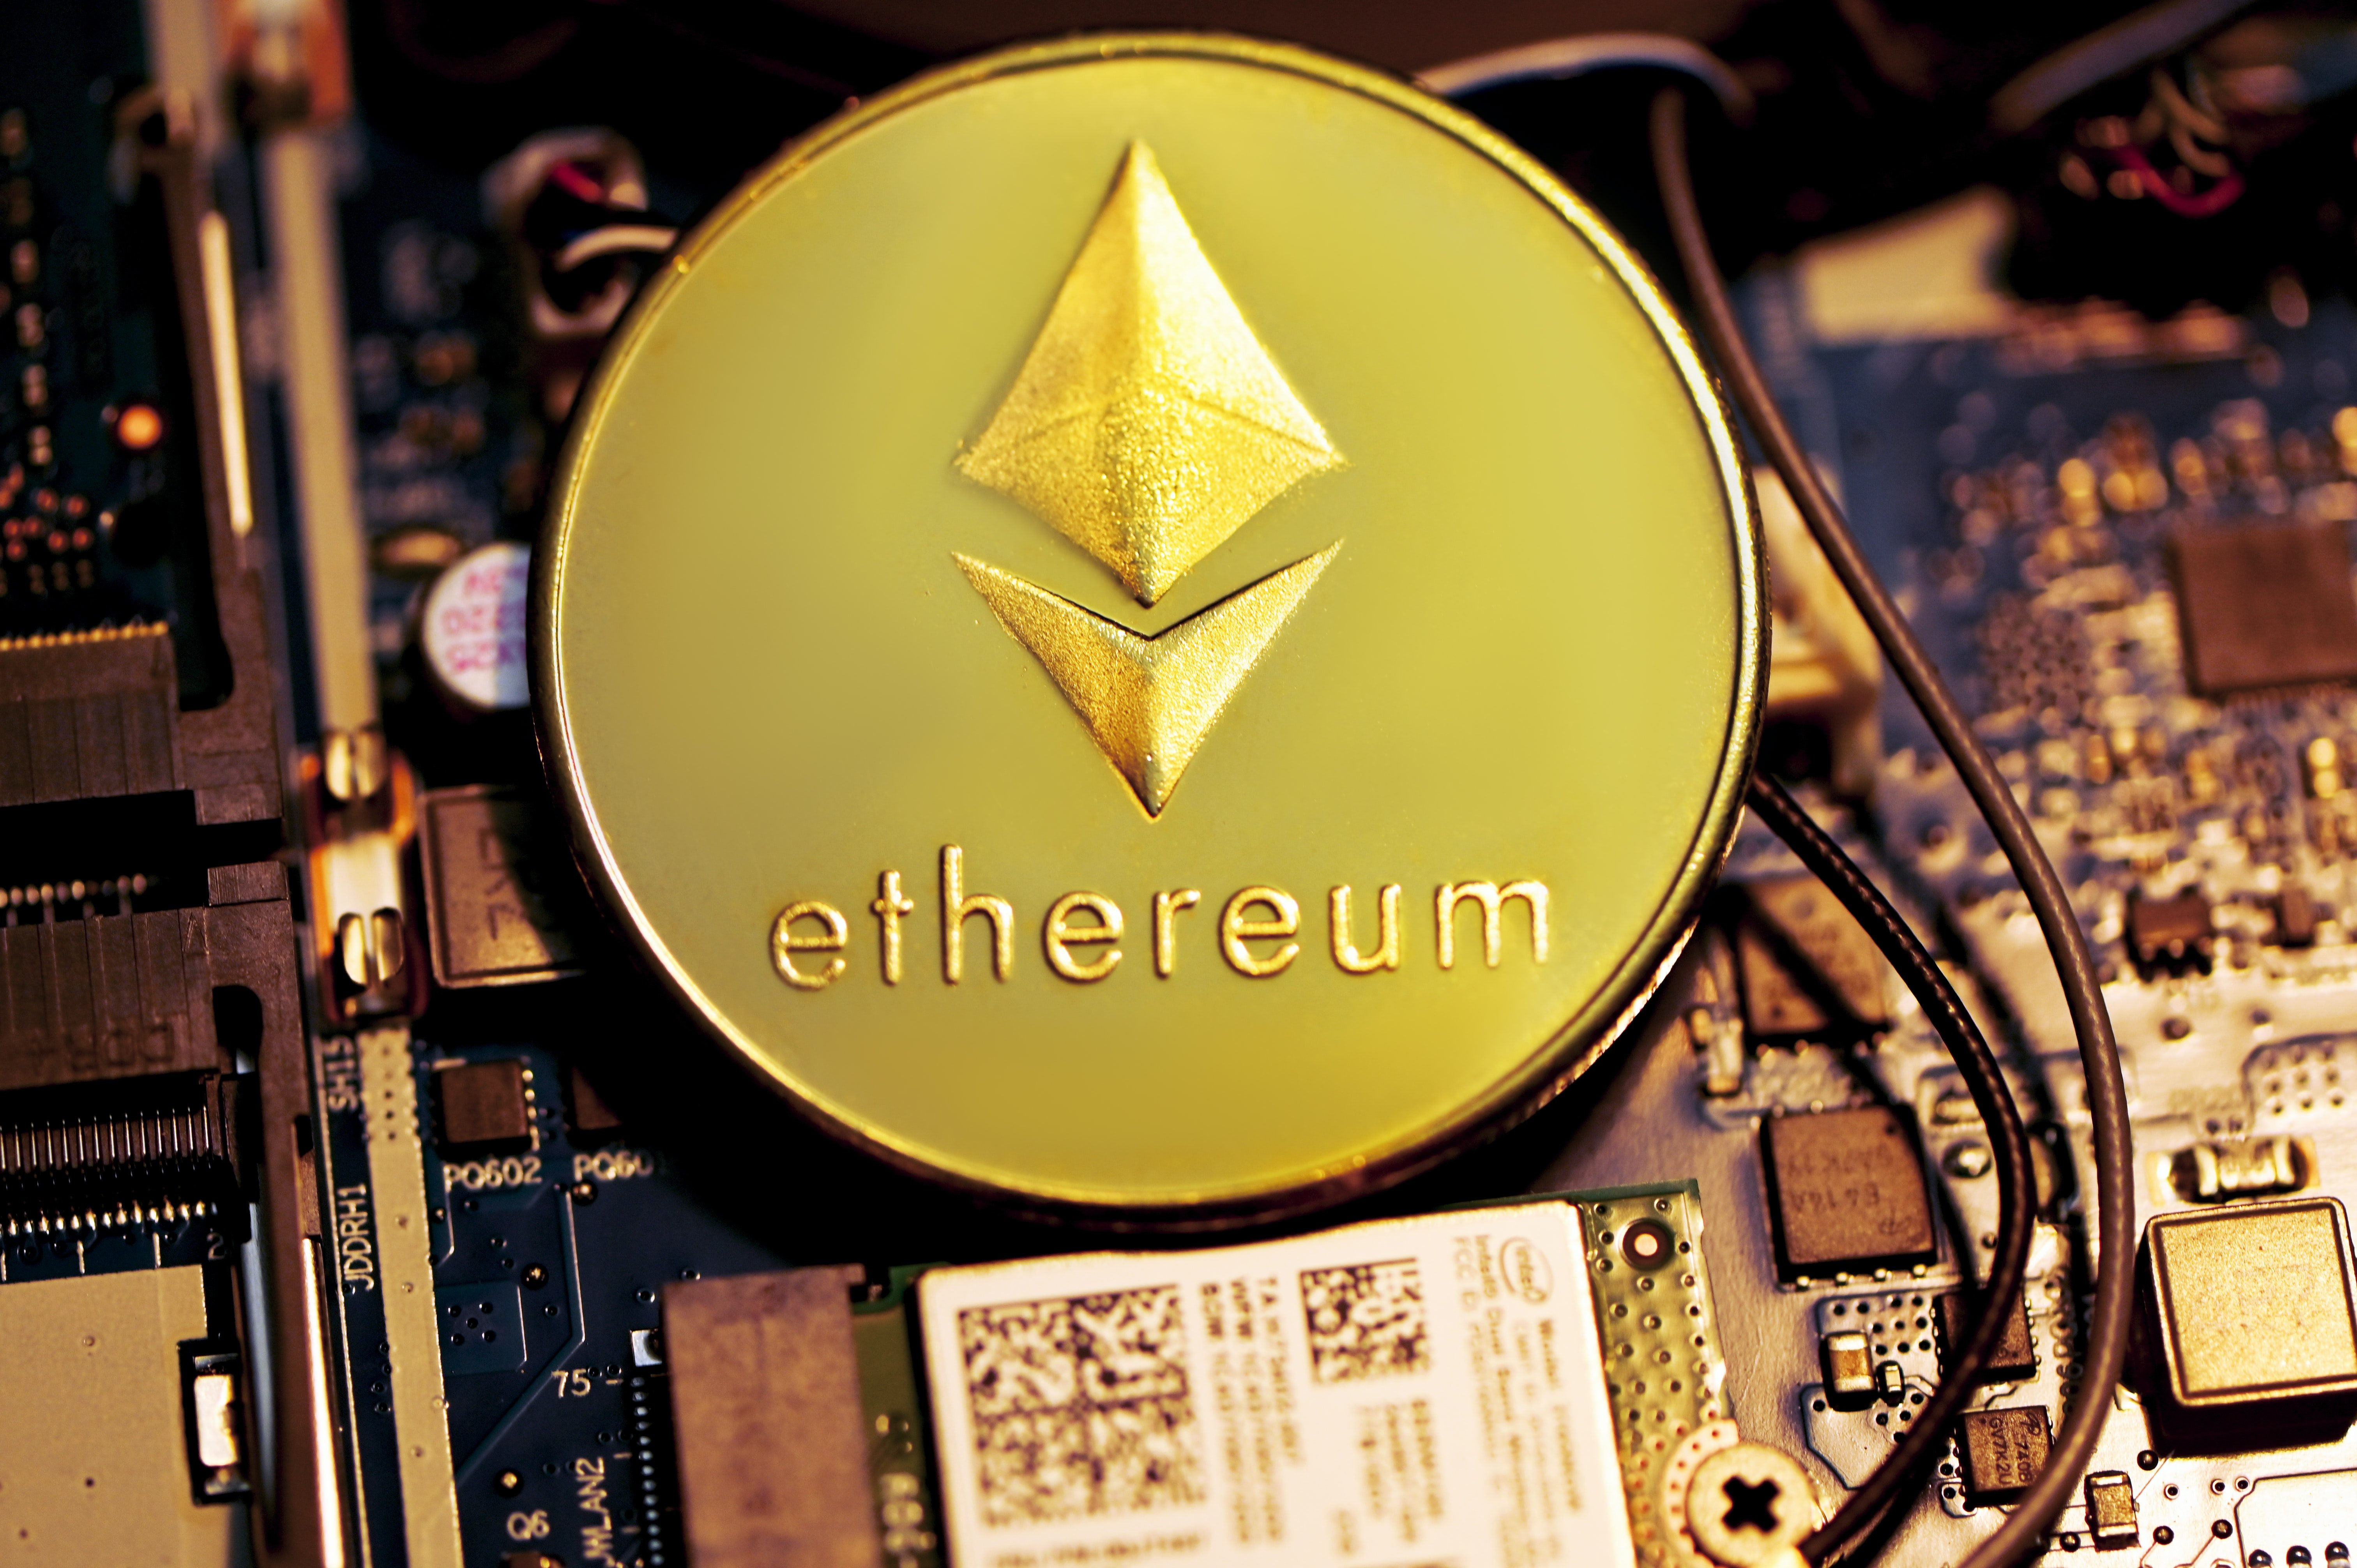 ggCrypto only mines ethereum but there are plans to add other cryptocurrency coins in the future